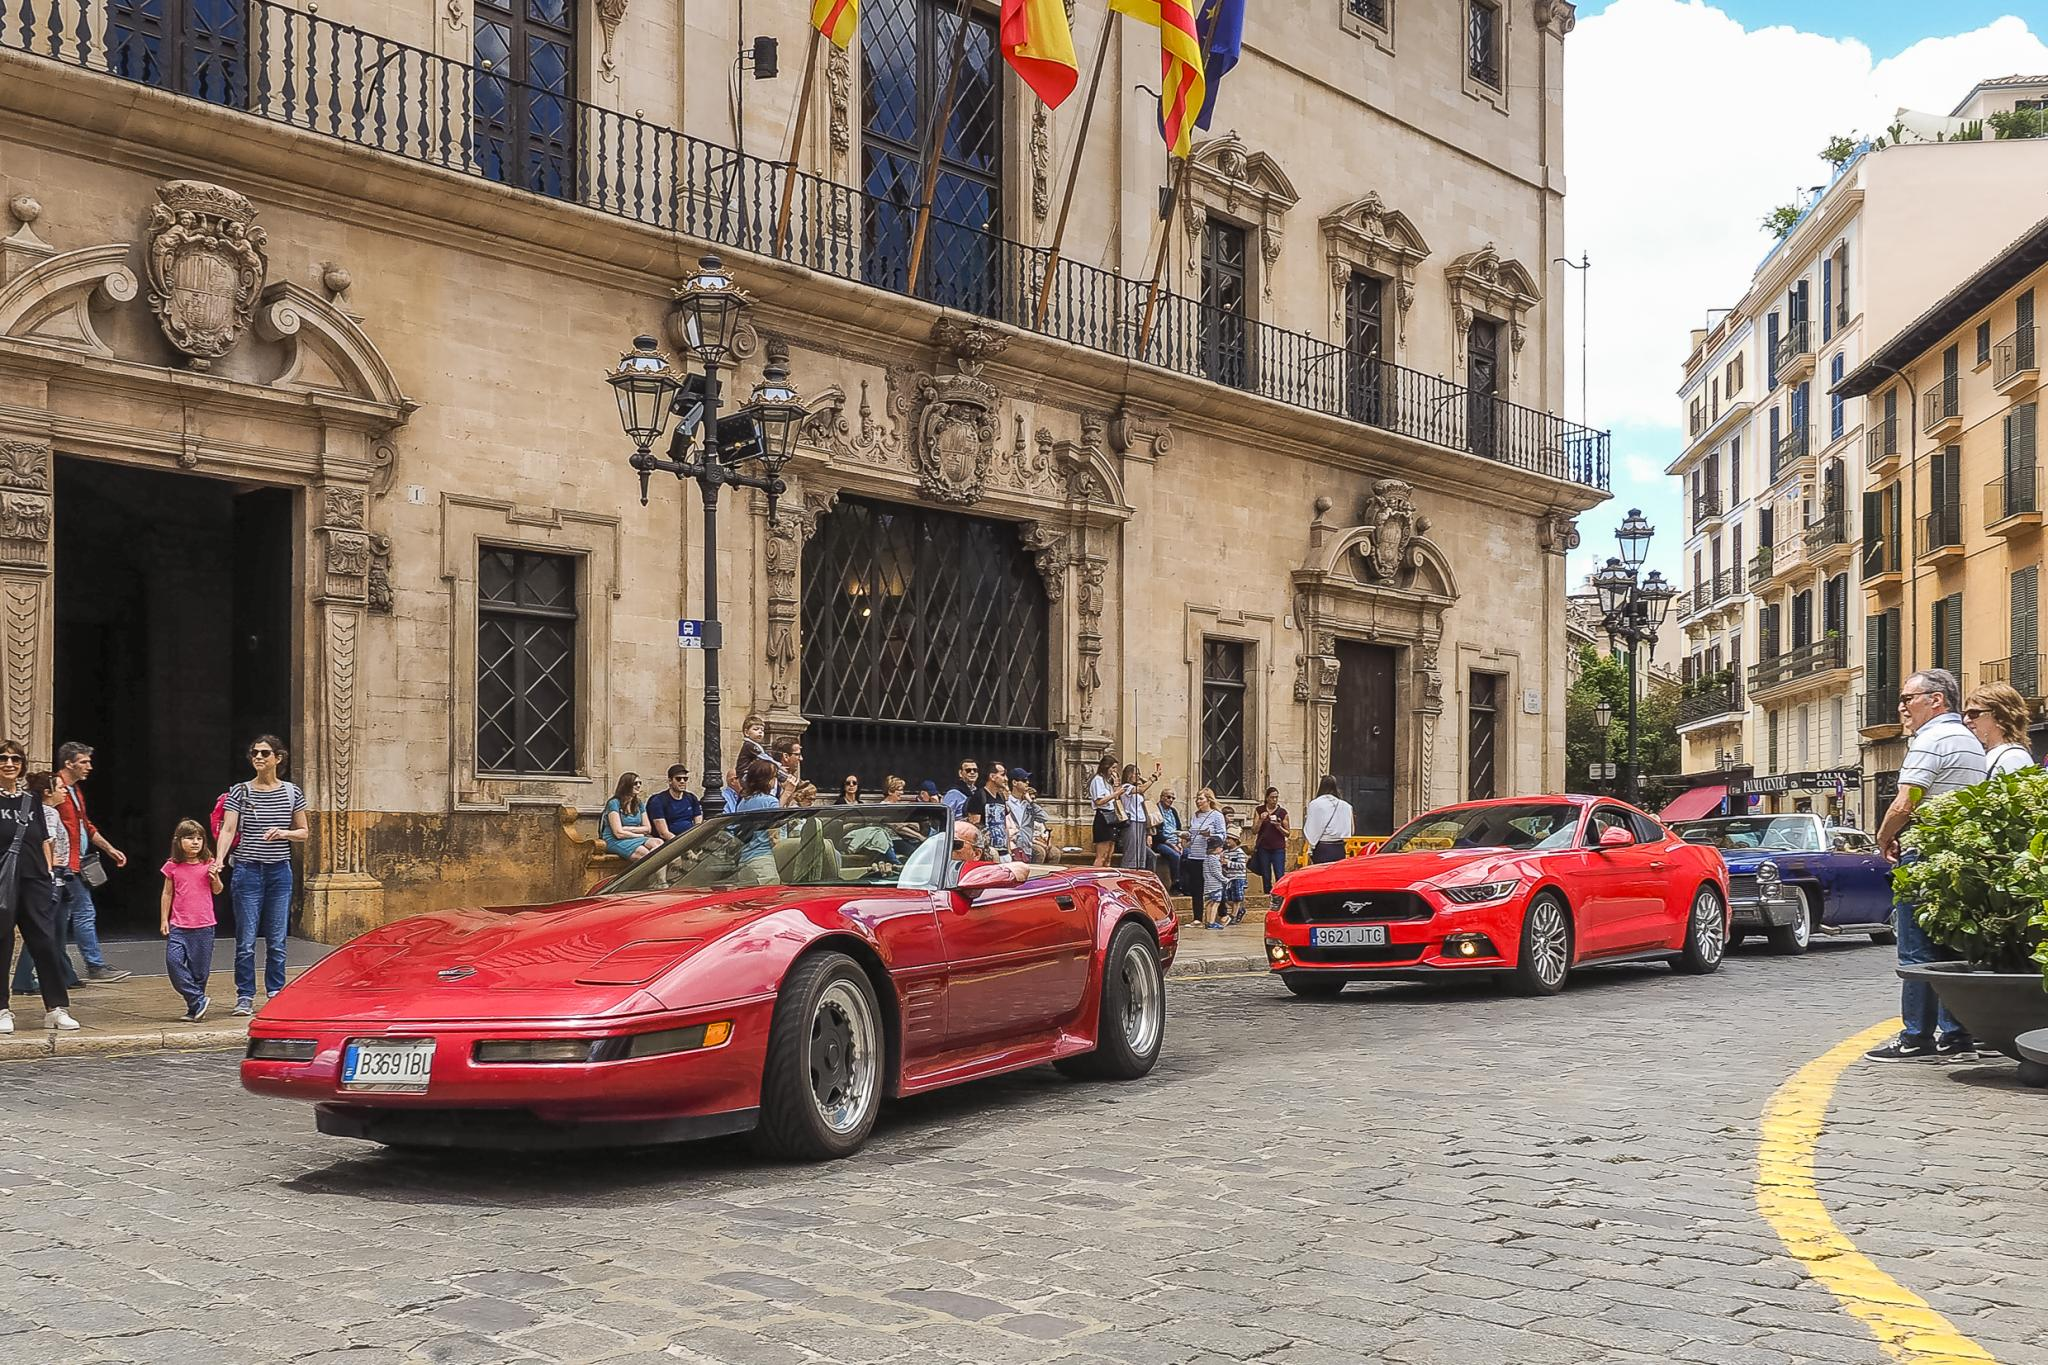 Cruising through Plaça Cort in Palma